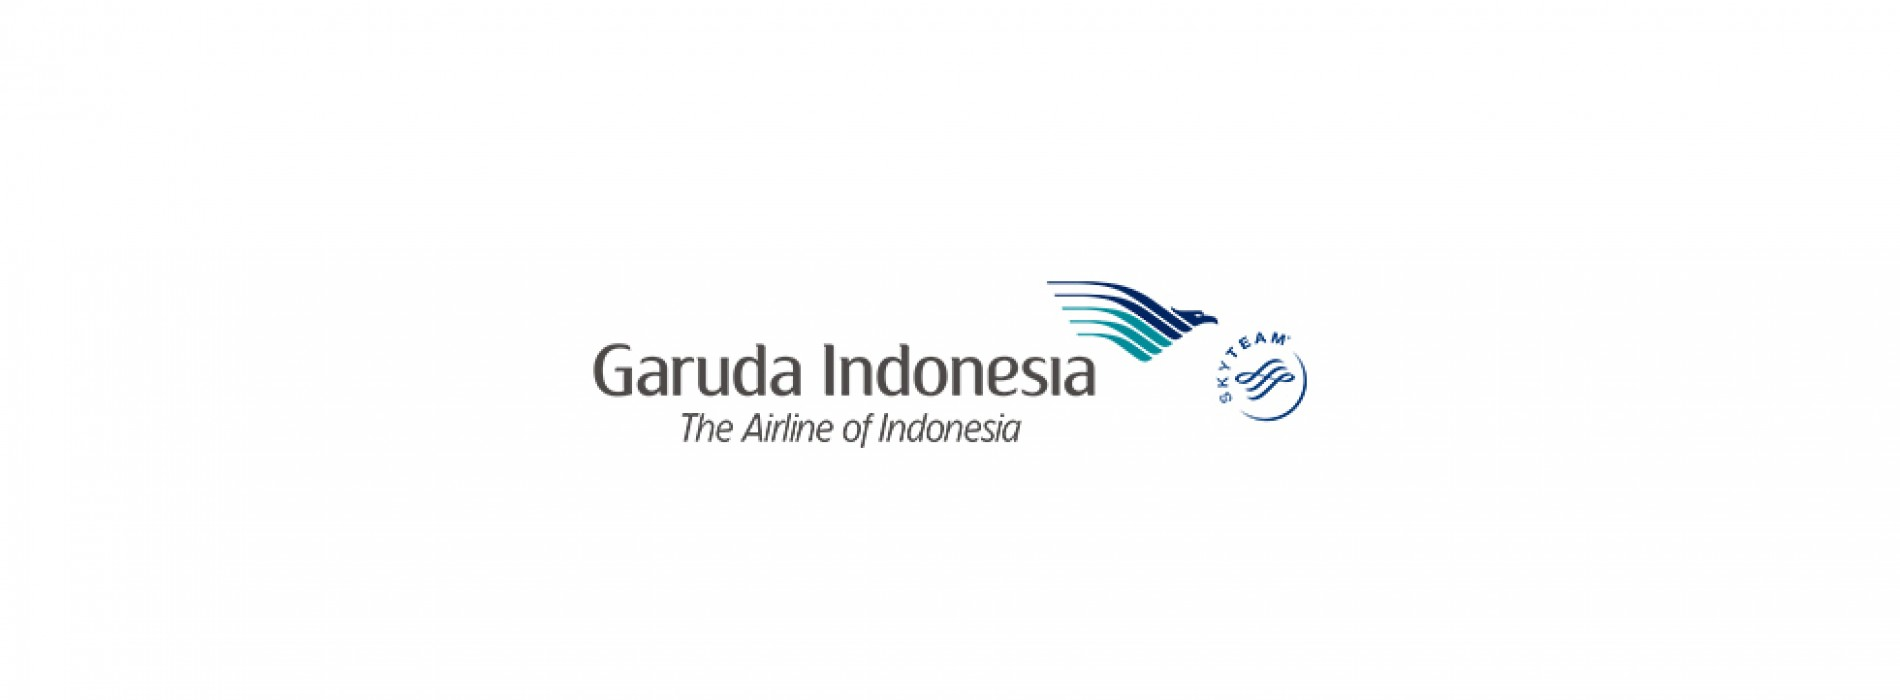 Garuda Indonesia signs with Sabre to support growth strategy